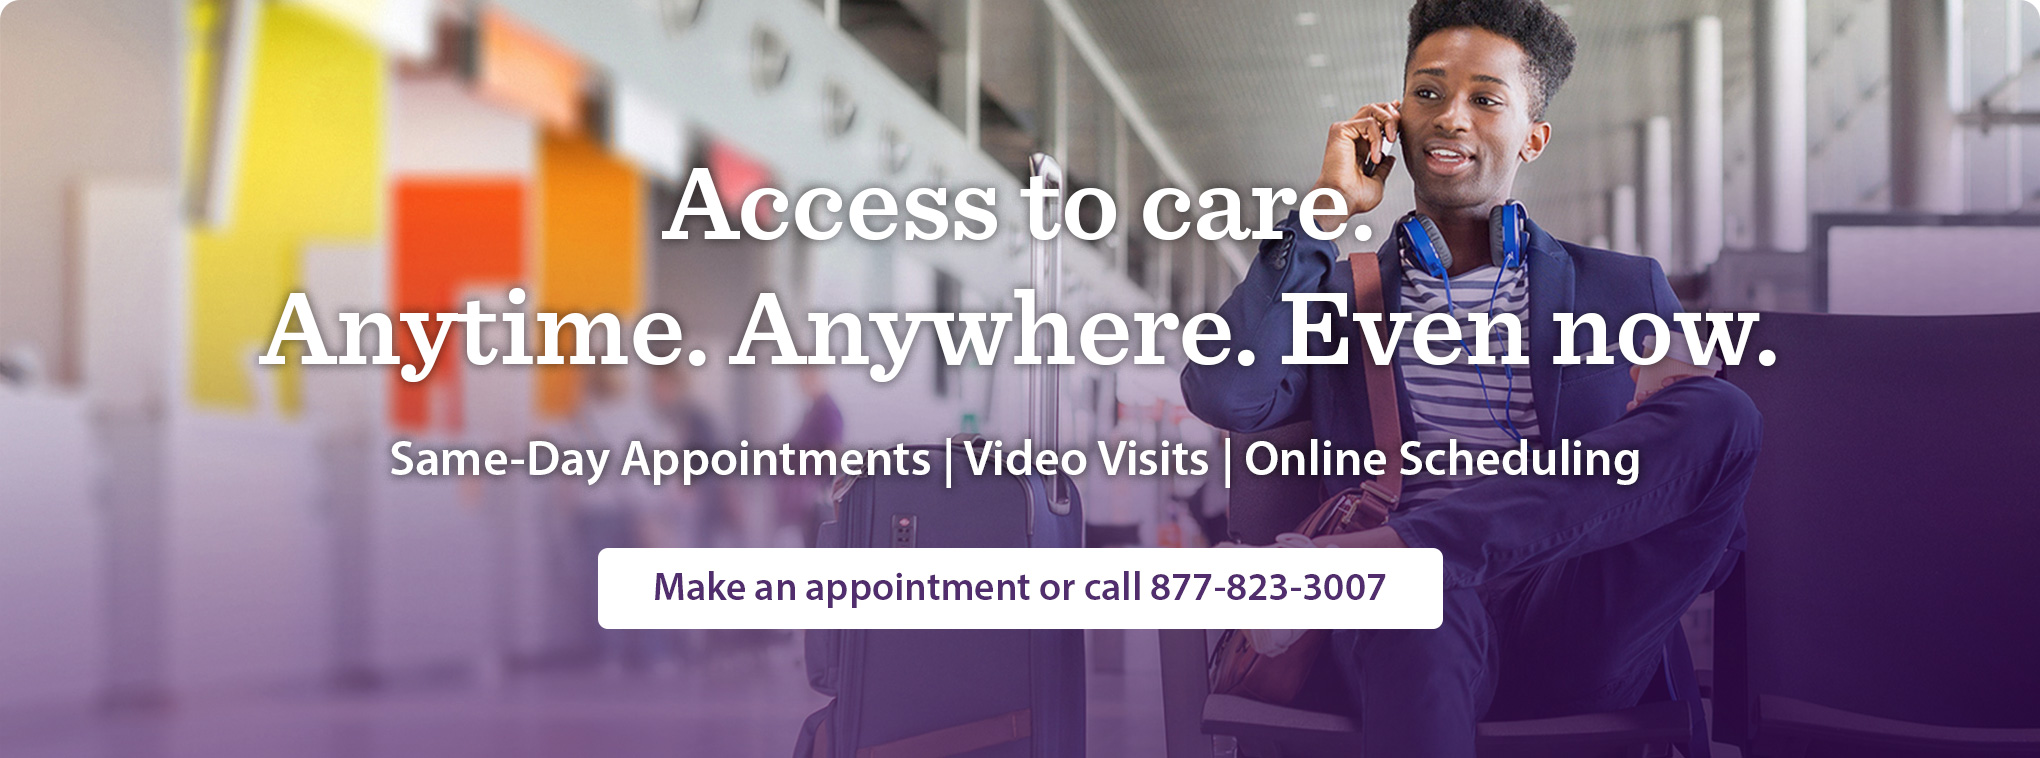 Access to care. Anytime. Anywhere. Even Now.